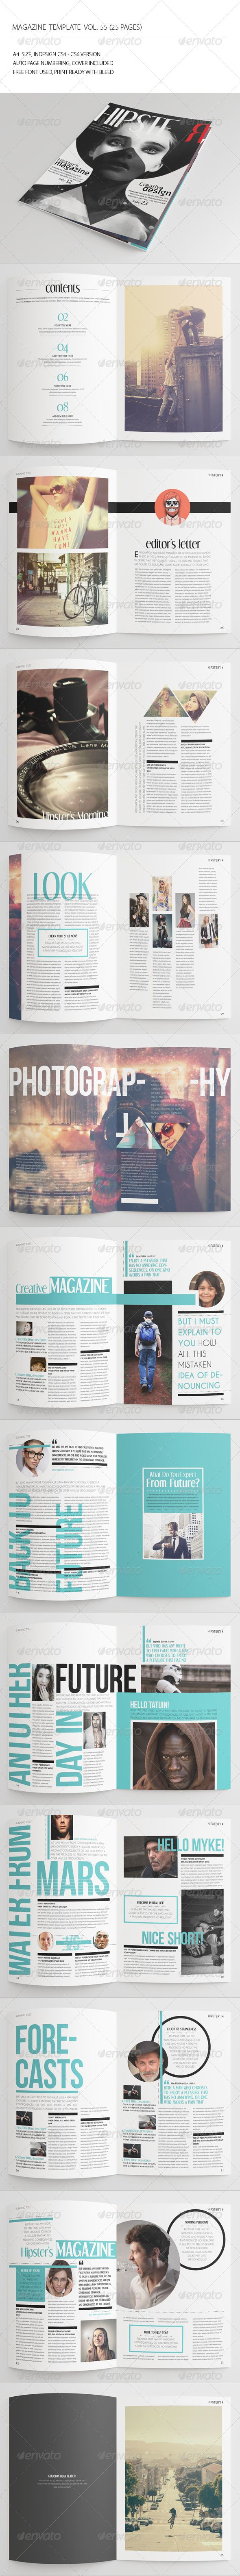 25 Pages Hipster Magazine Vol55 by -BeCreative-  25 Pages Hipster Magazine Vol55: This item consist of 25 pages that fully editable and customizable.Detail :25 pages Size A4 (8.2